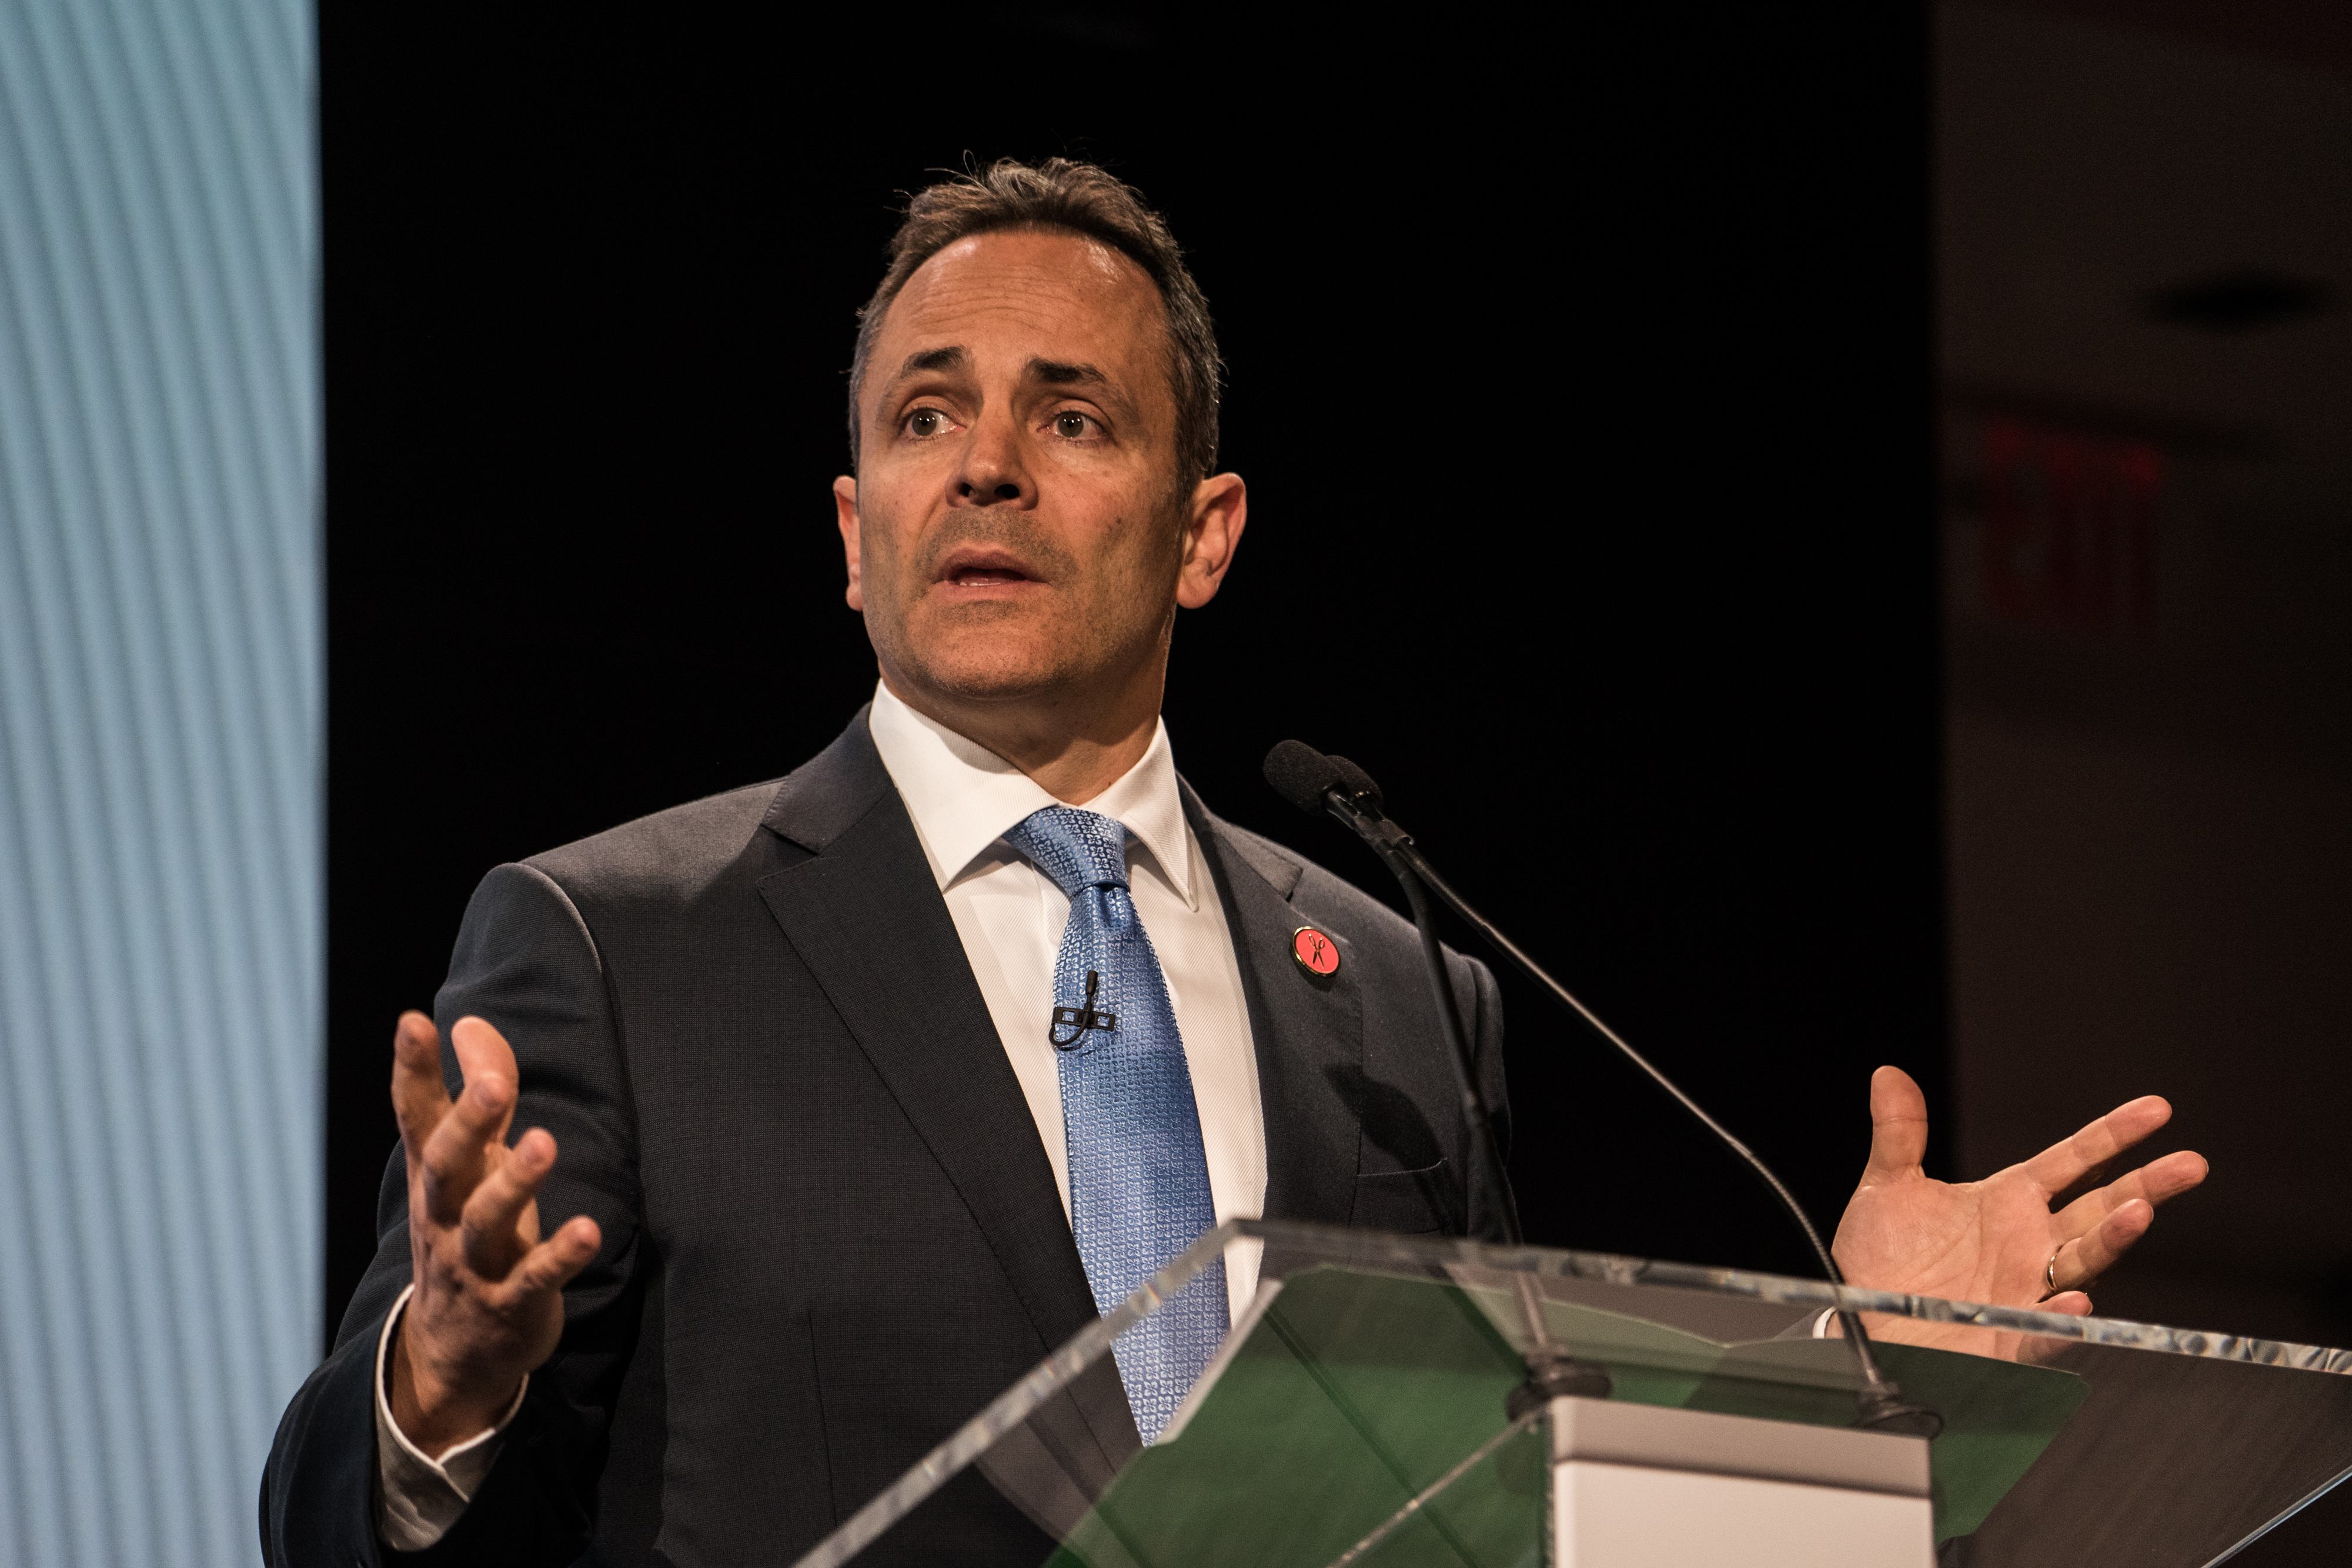 Matt Bevin, governor of Kentucky, speaks during the 2017 International Finance and Infrastructure Cooperation Forum in New York, U.S., on Monday, April 24, 2017. The forum brings together U.S. and Chinese government officials and global business executives from Fortune 500 companies.